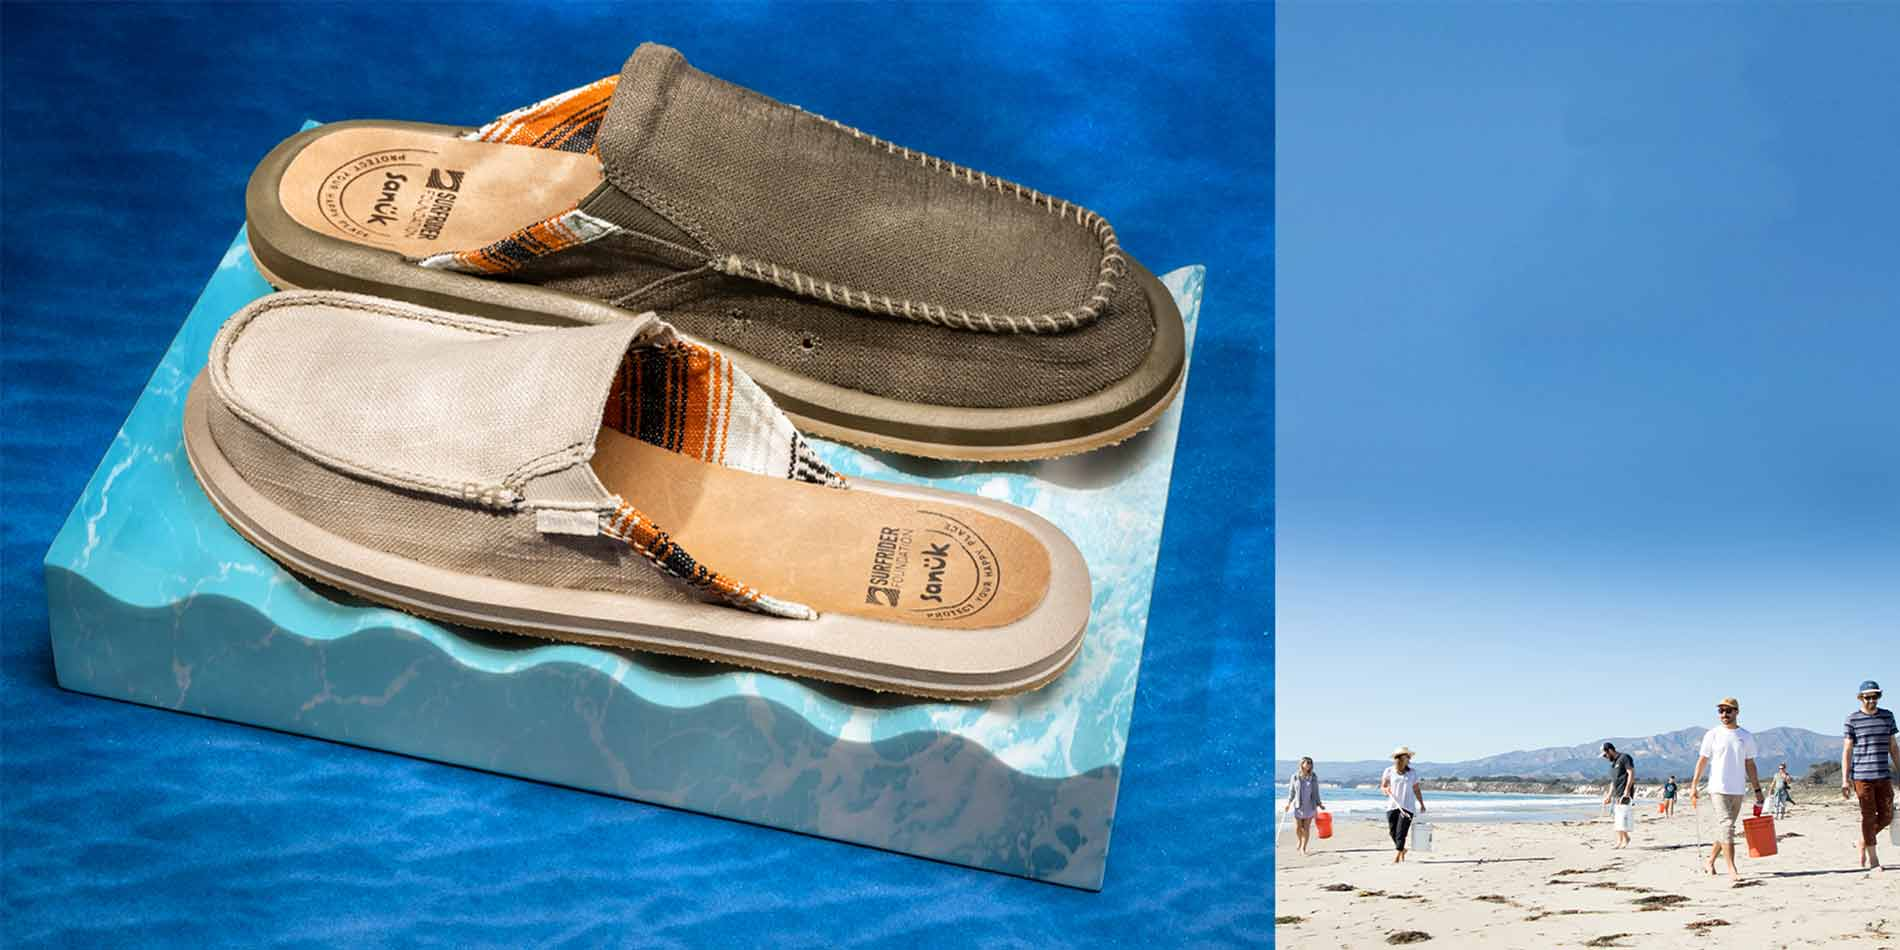 A pair of Sanuk sandals on the left and people walking on a beach on the right.